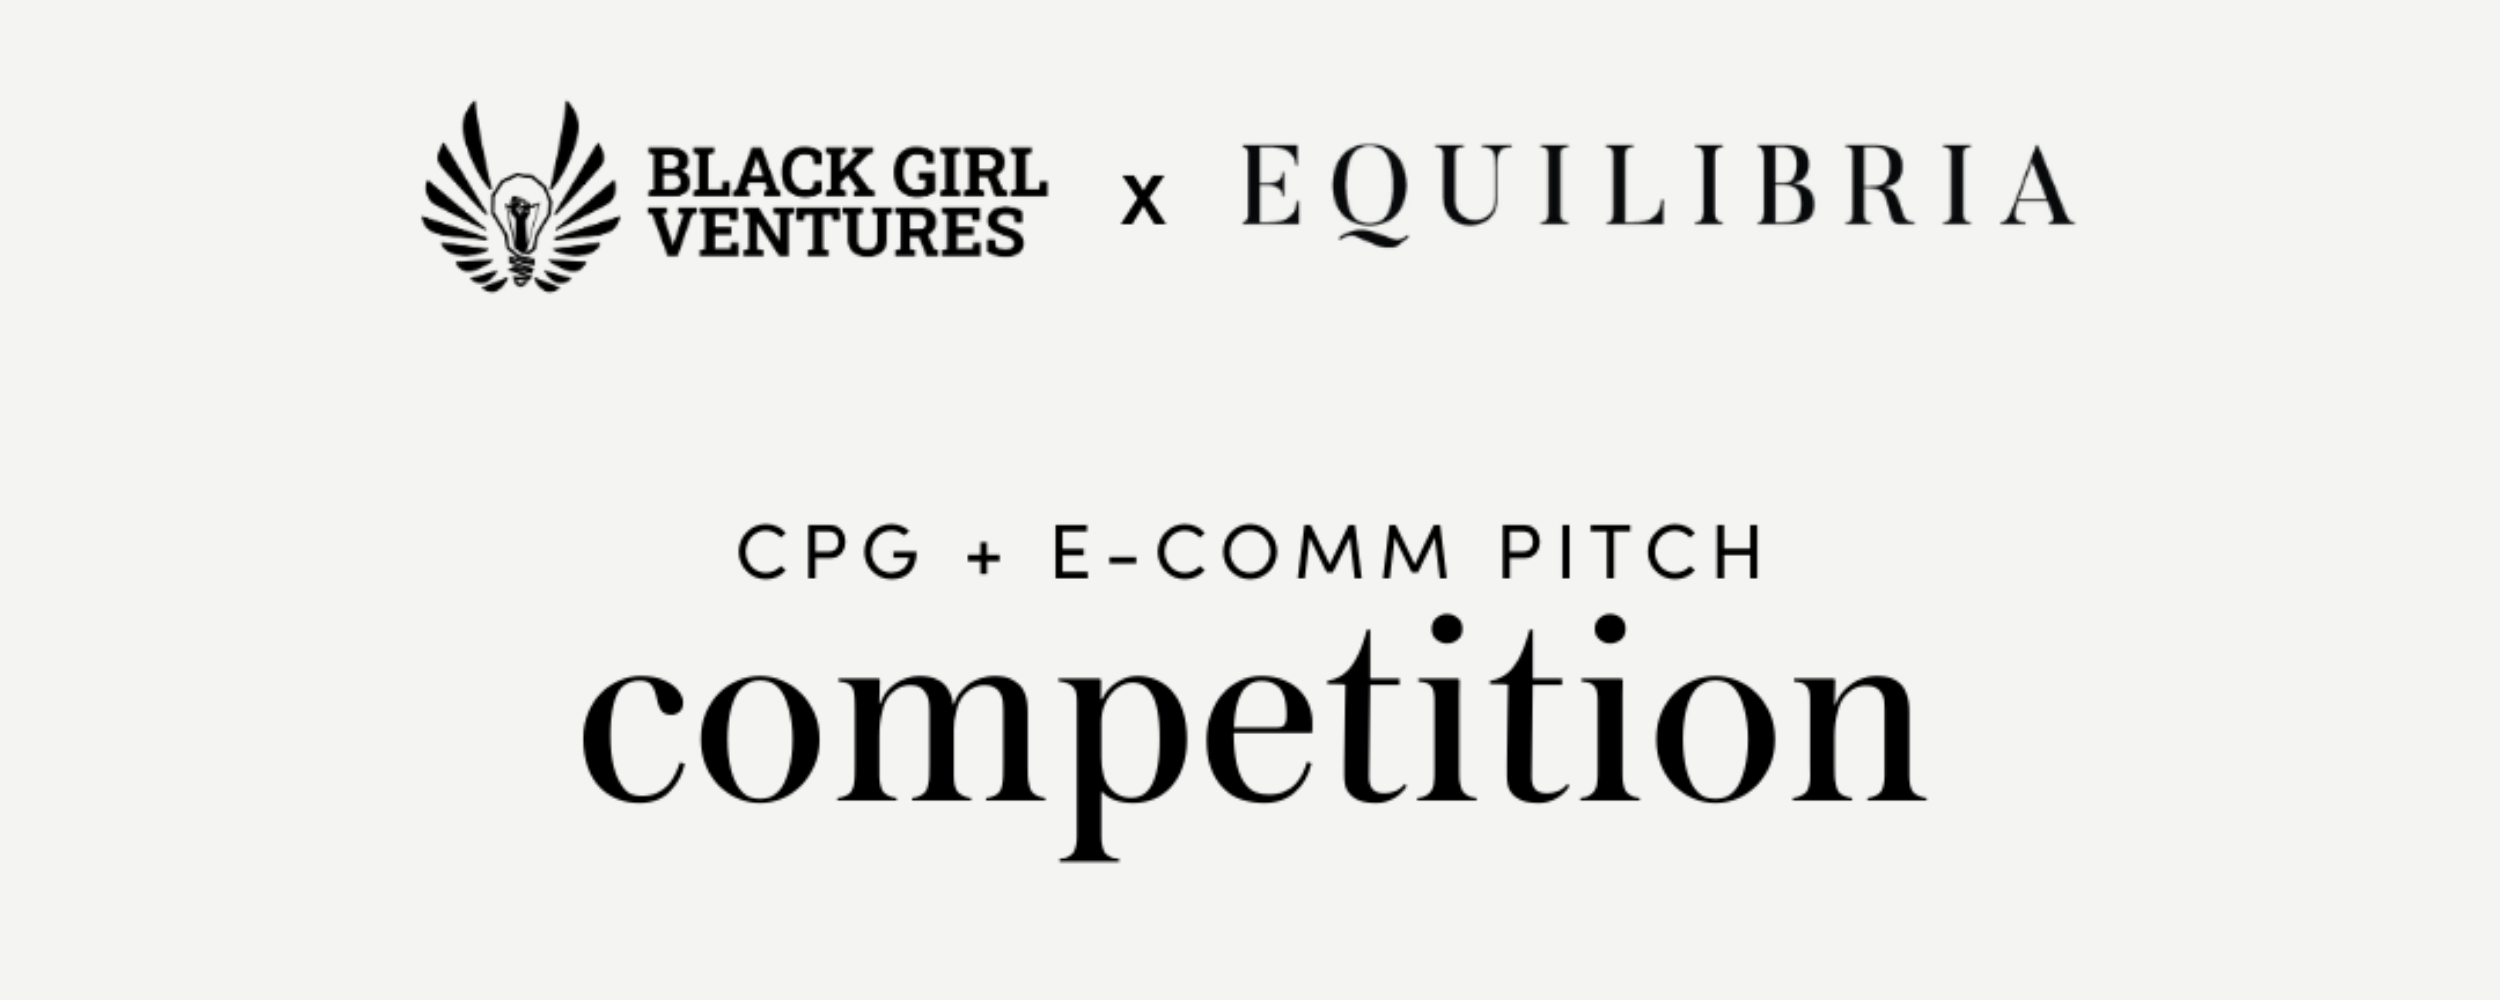 Black Girl Ventures x Equilibria Pitch Competition